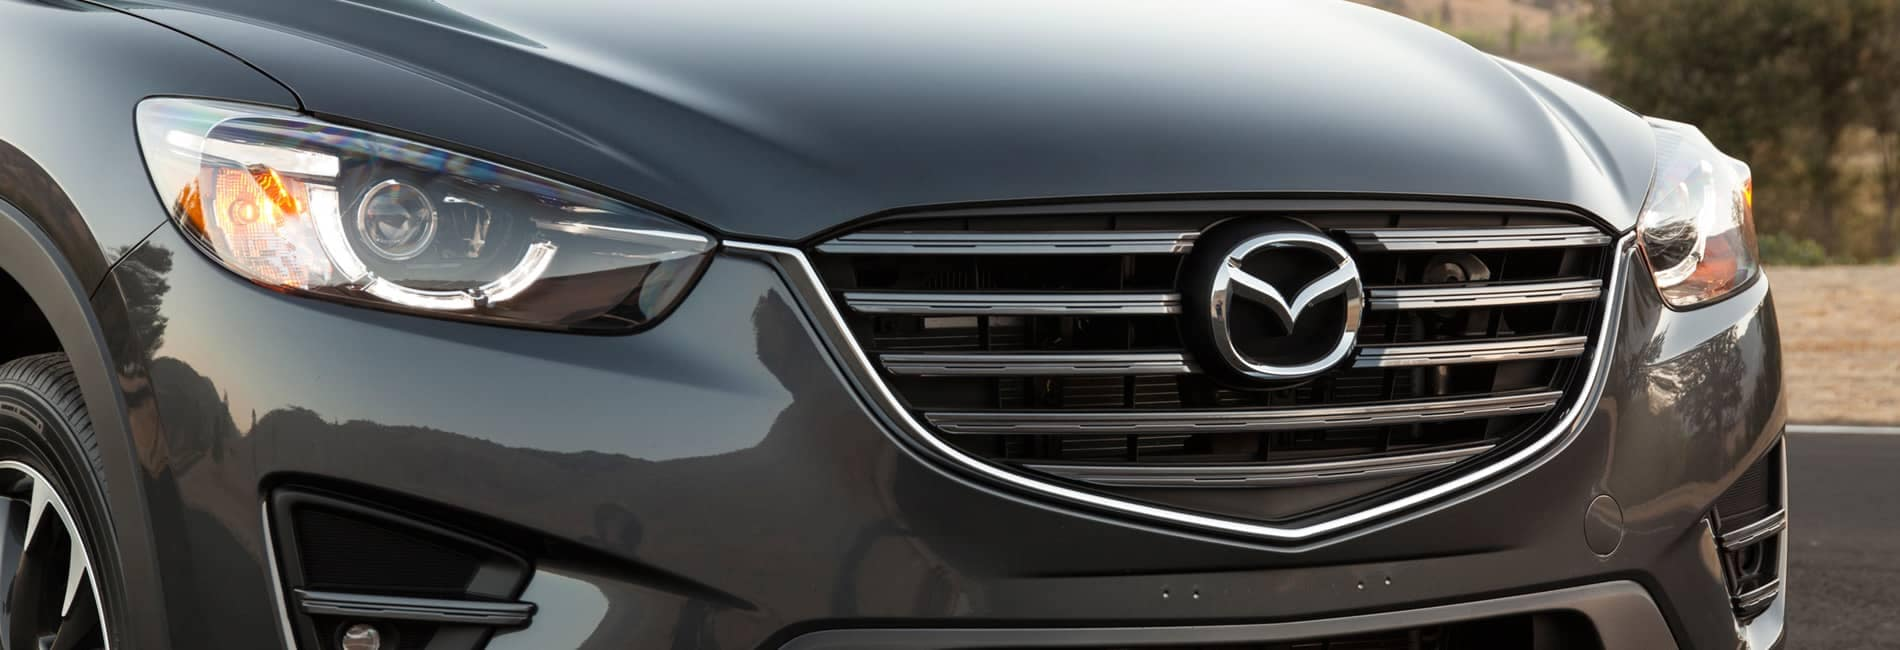 Mazda-Front-Grill-2